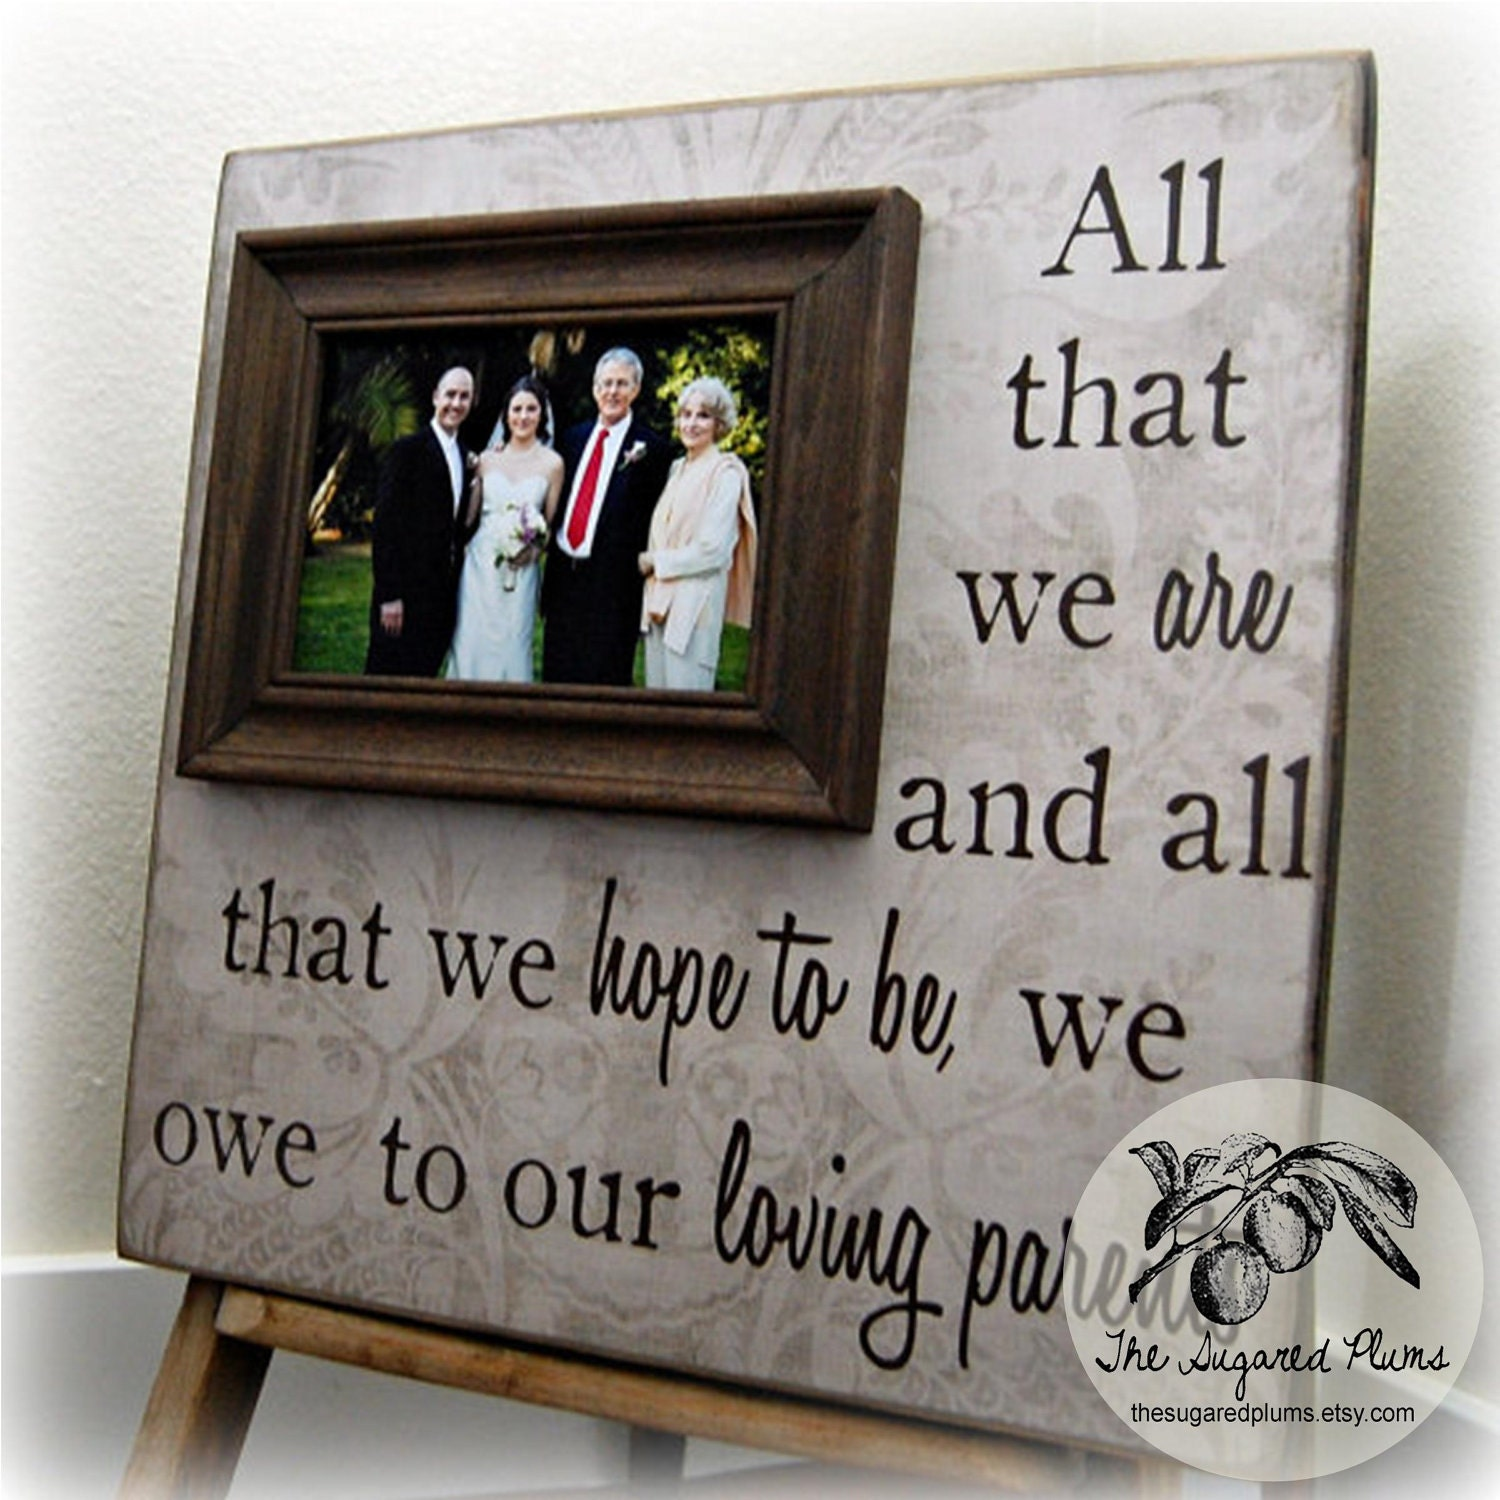 Gifts For Parents Wedding Thank You: All That We Are Parents Gift Personalized Picture Frame Custom